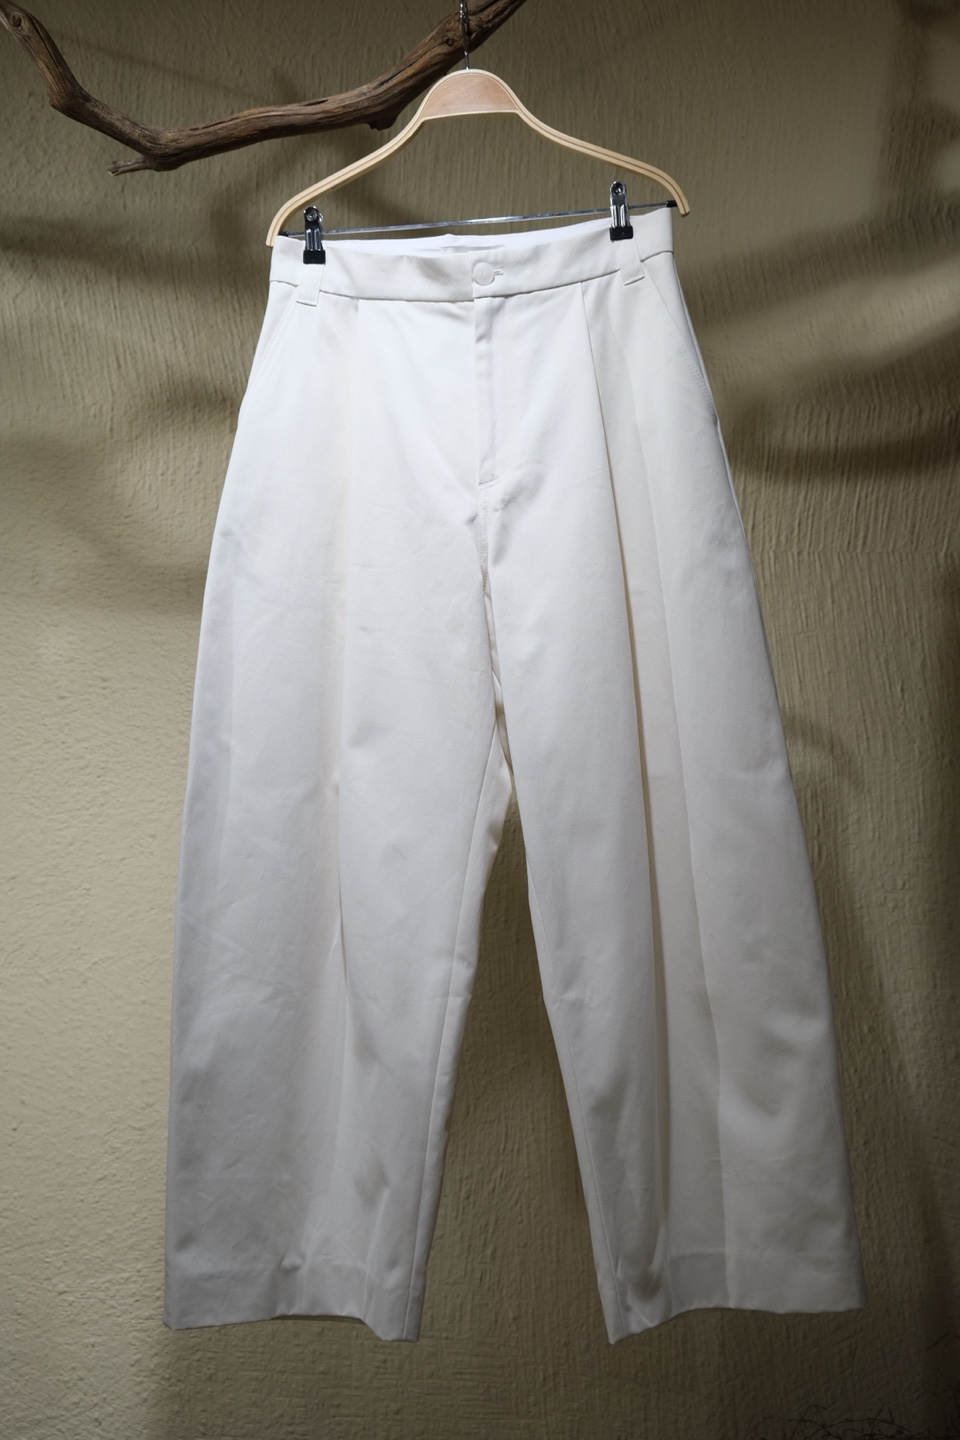 스튜디오 니콜슨 STUDIO NICHOLSON - Sorte Volume Pants - Milk